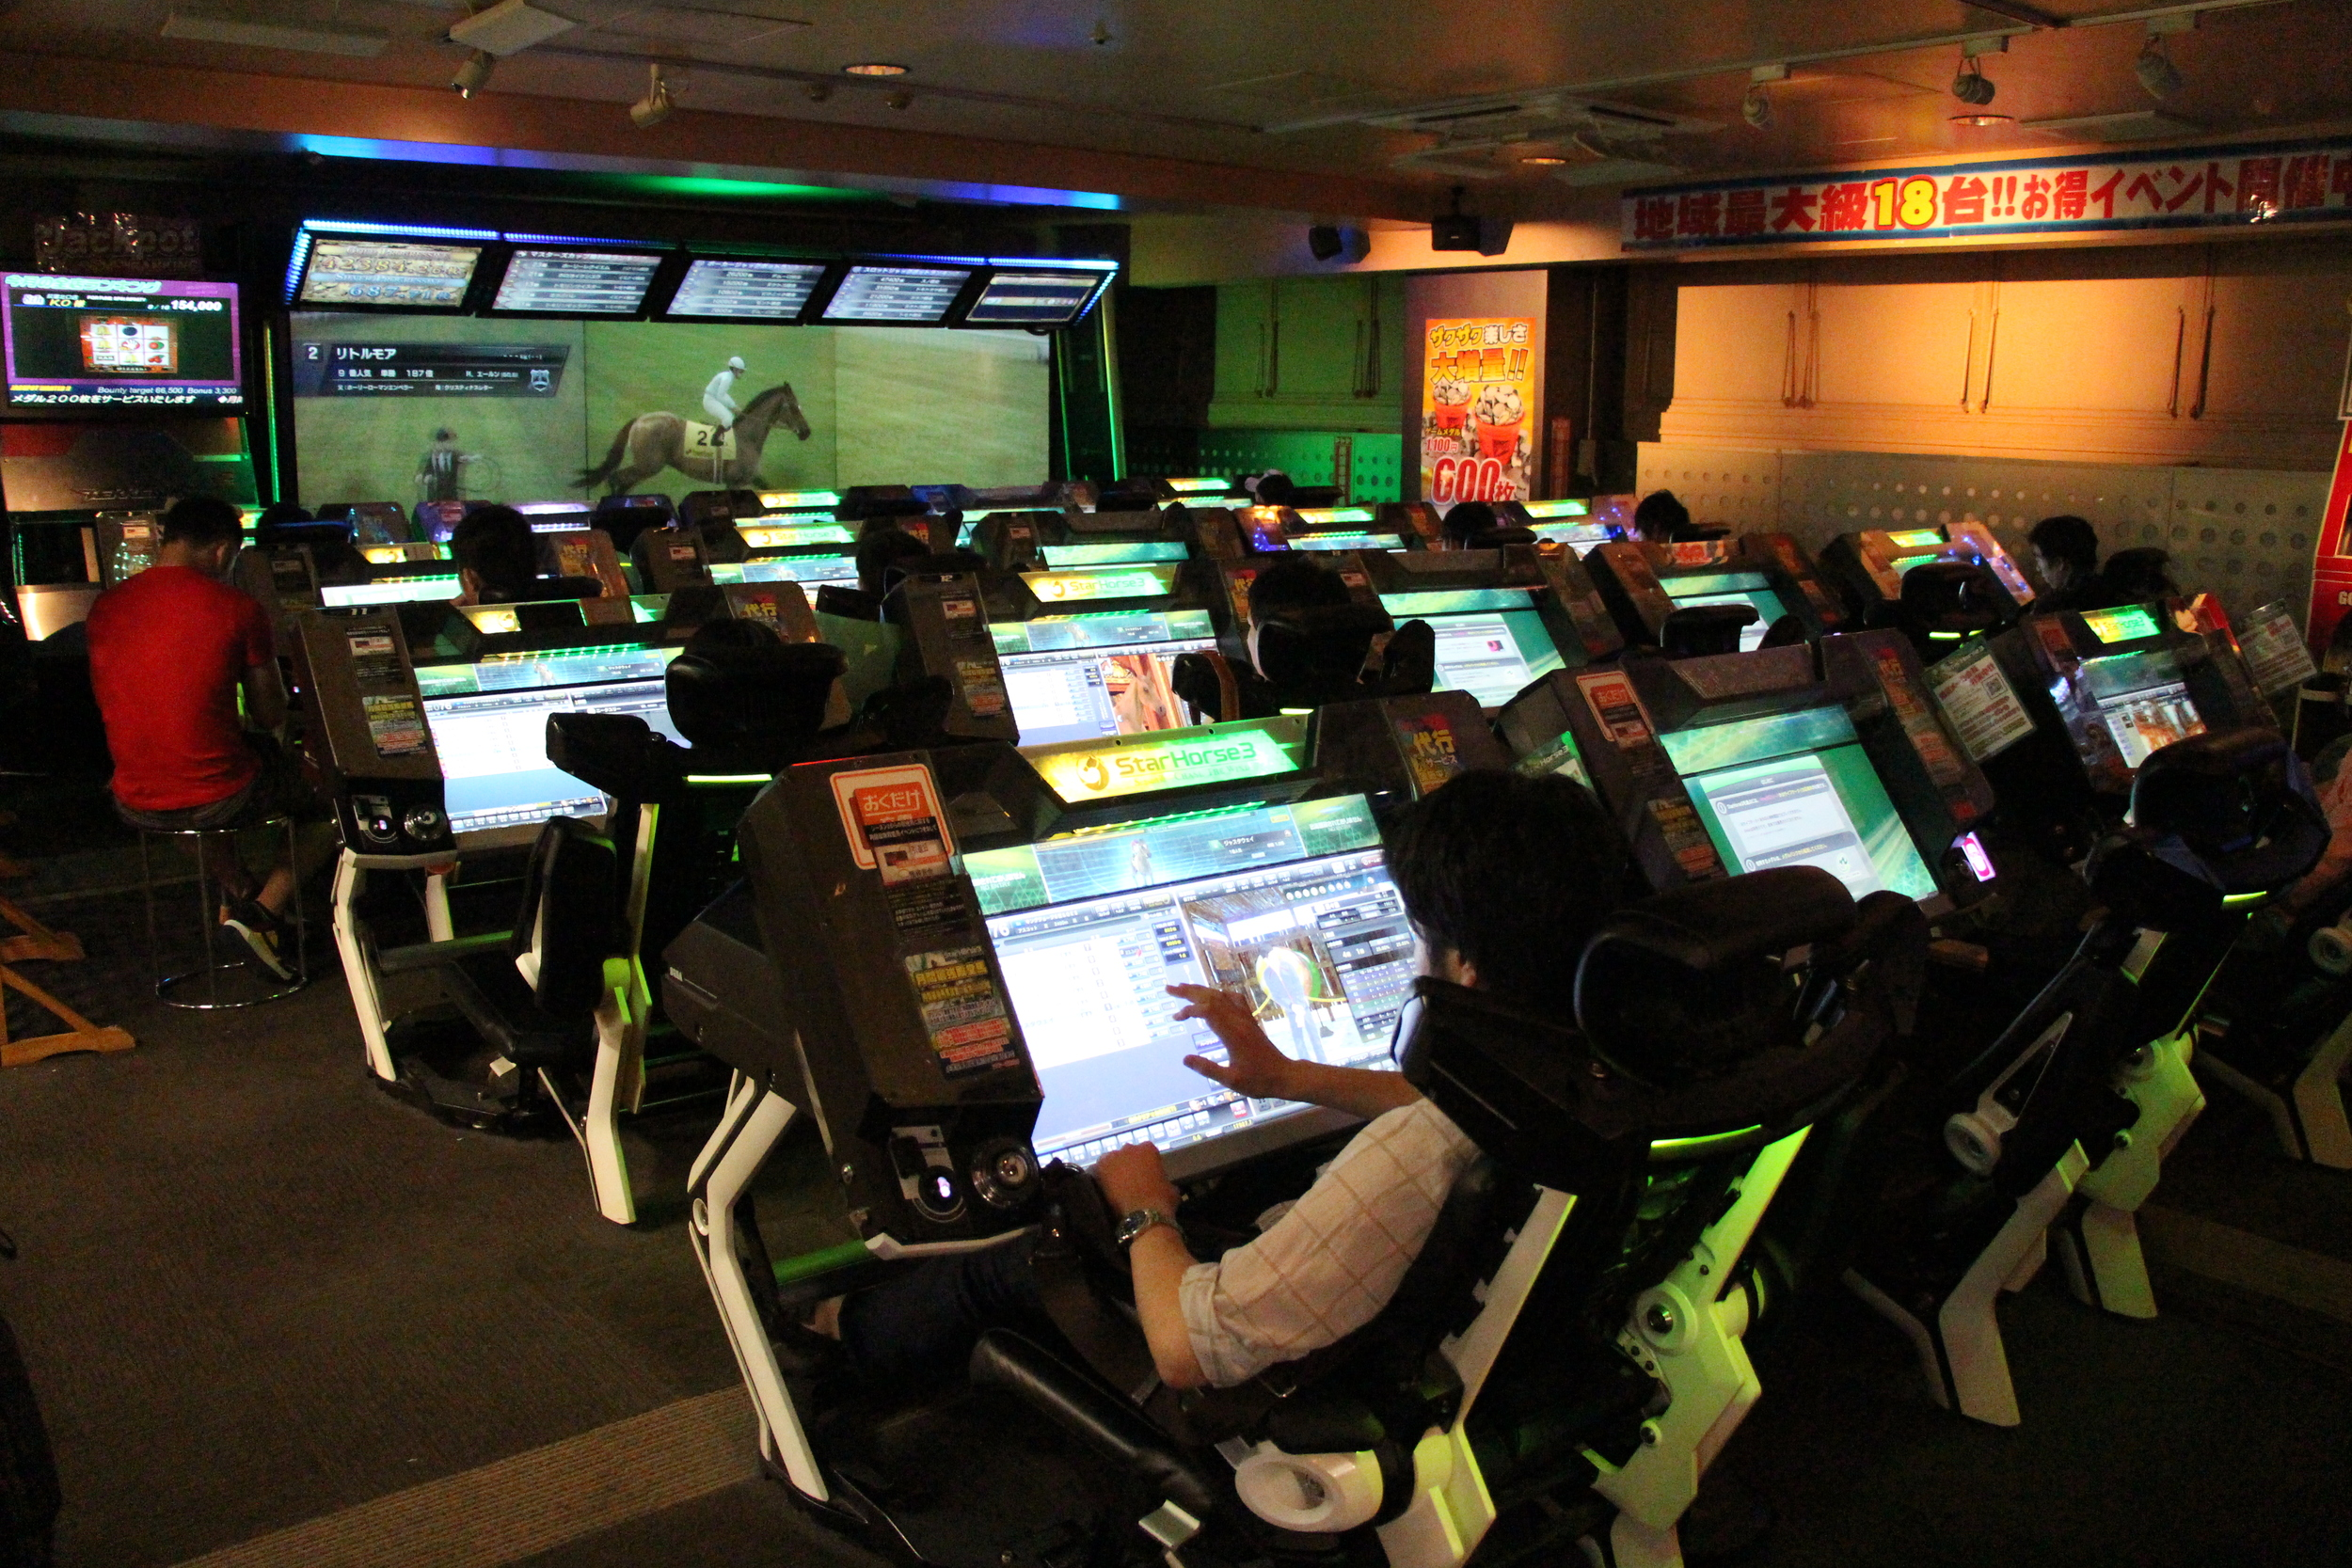 Horse racing appears to be big business in Japan and was the single largest activity we saw in the arcade.